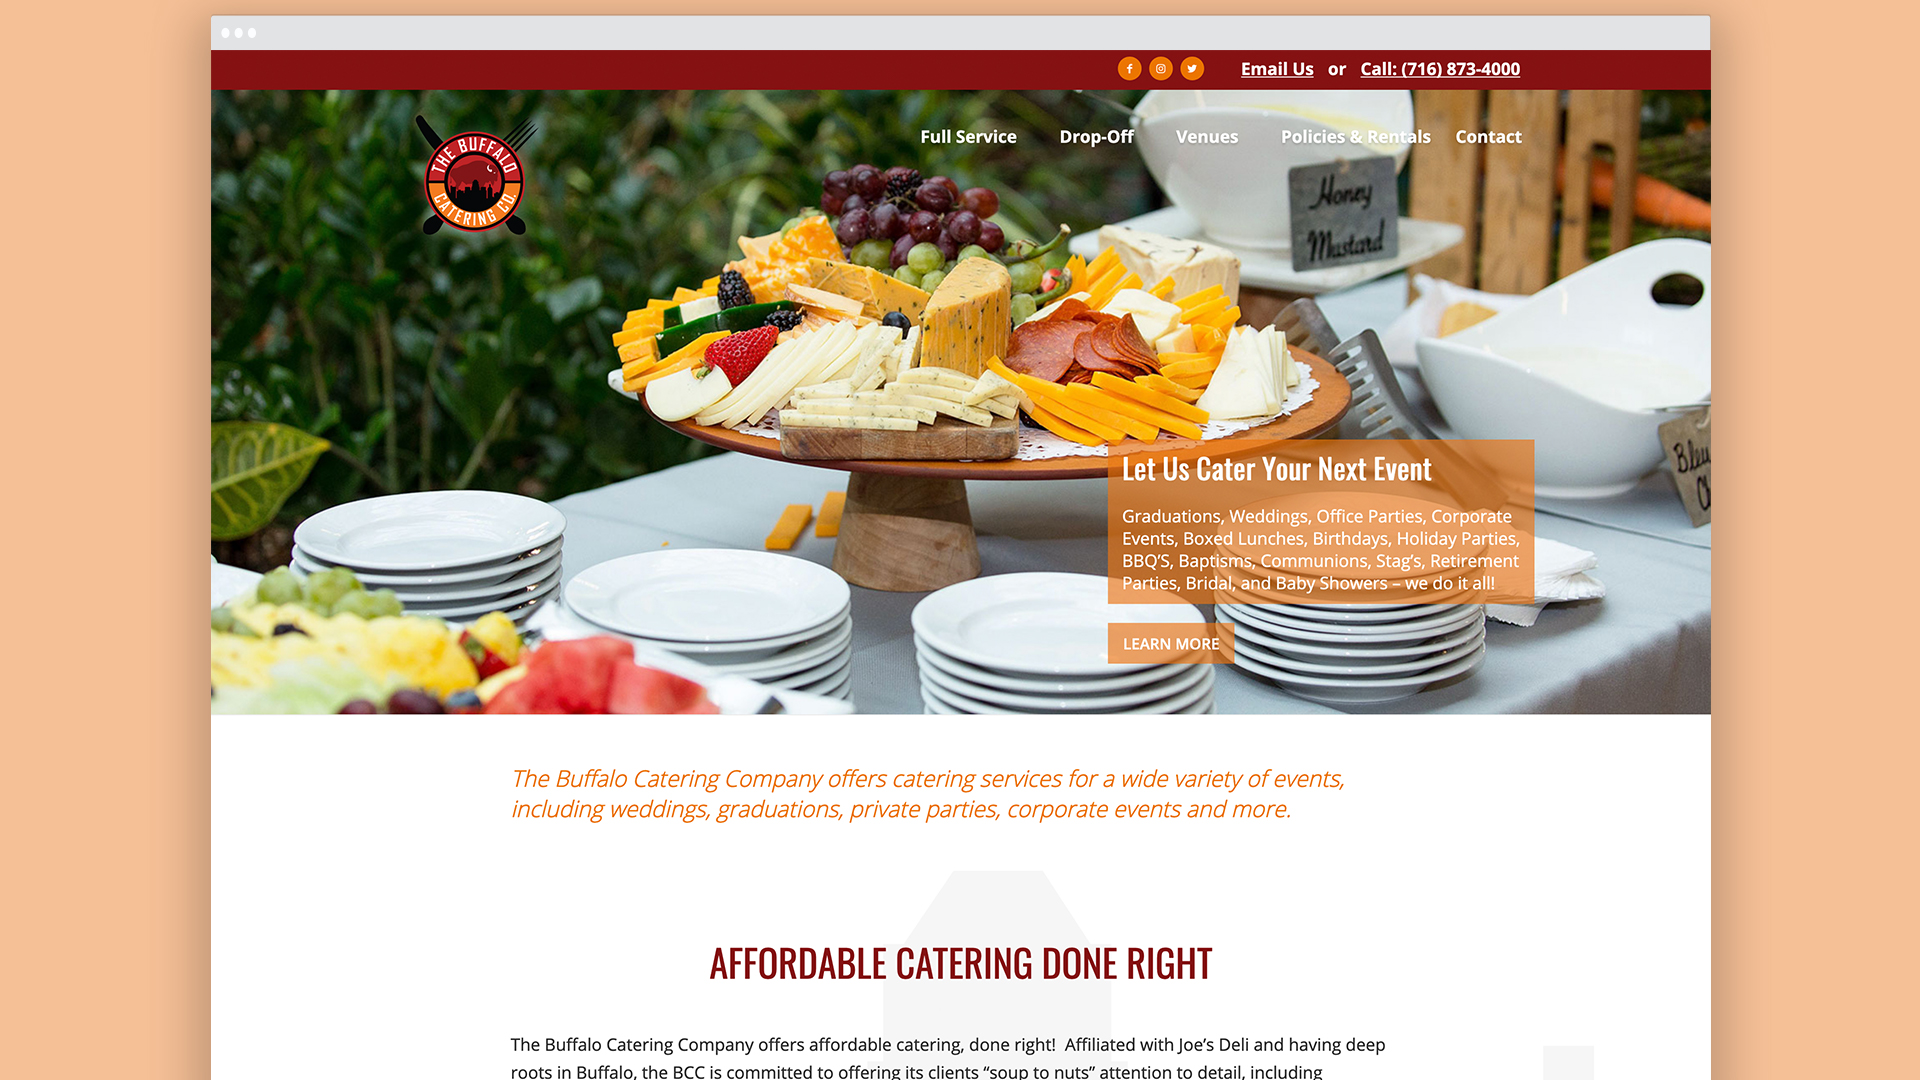 Search engine optimization, Website Design, Graphic Design, Branding, Catering